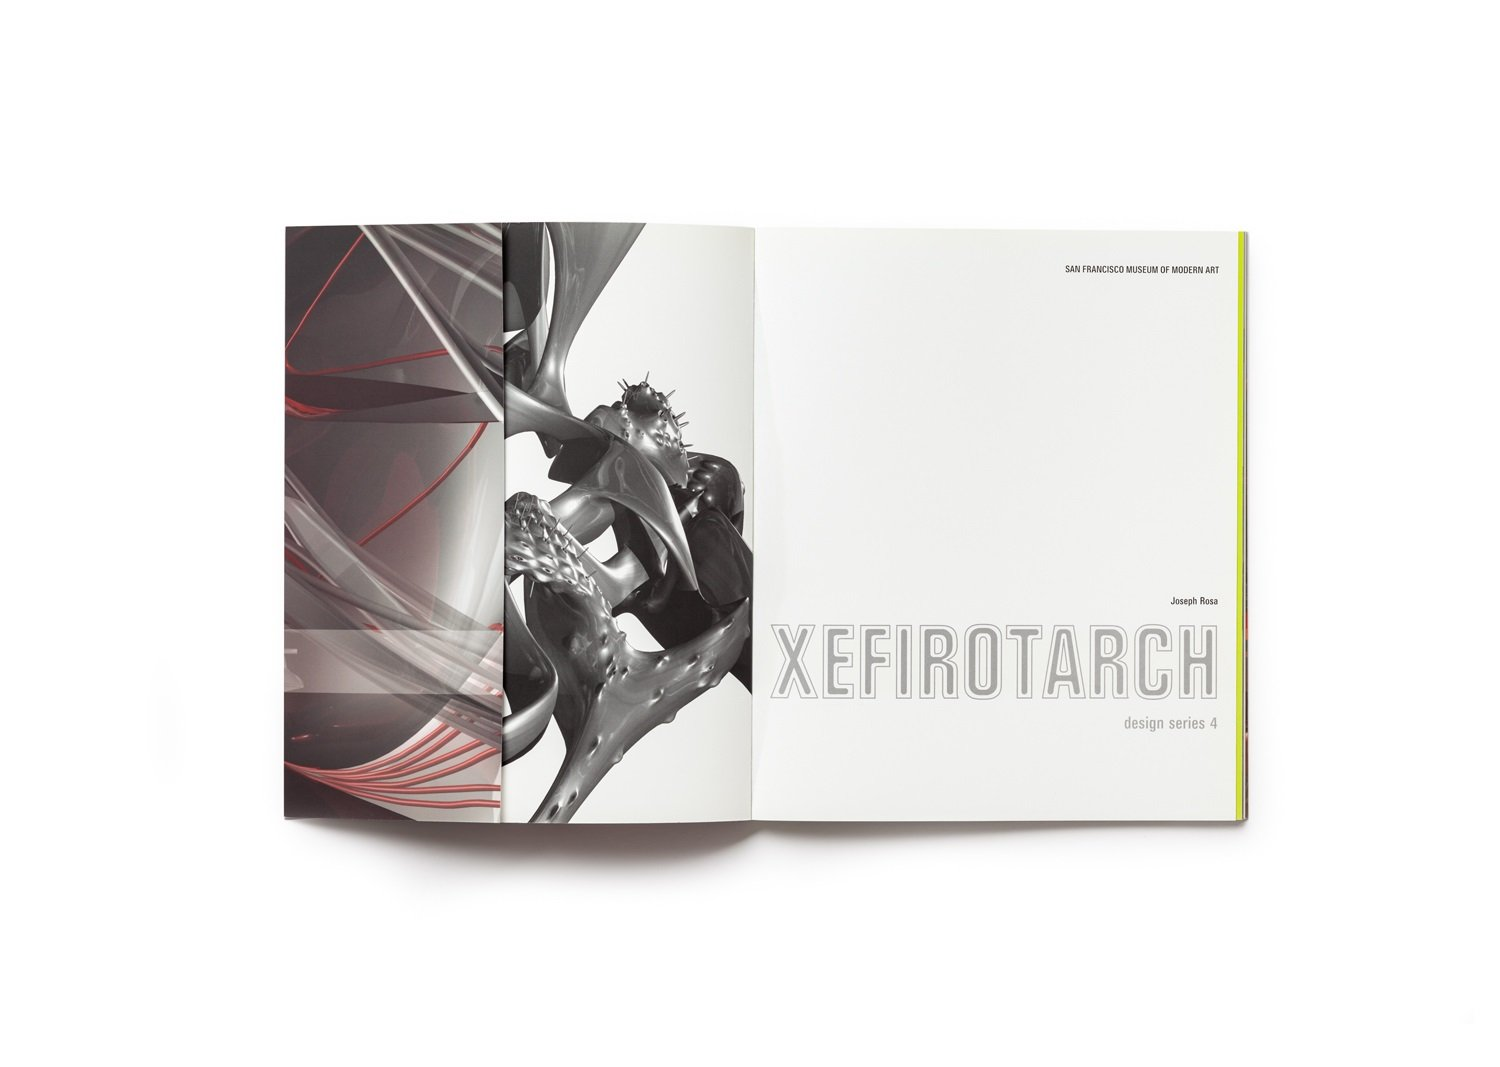 Xefirotarch: design series 4 publication front endsheet (closed)